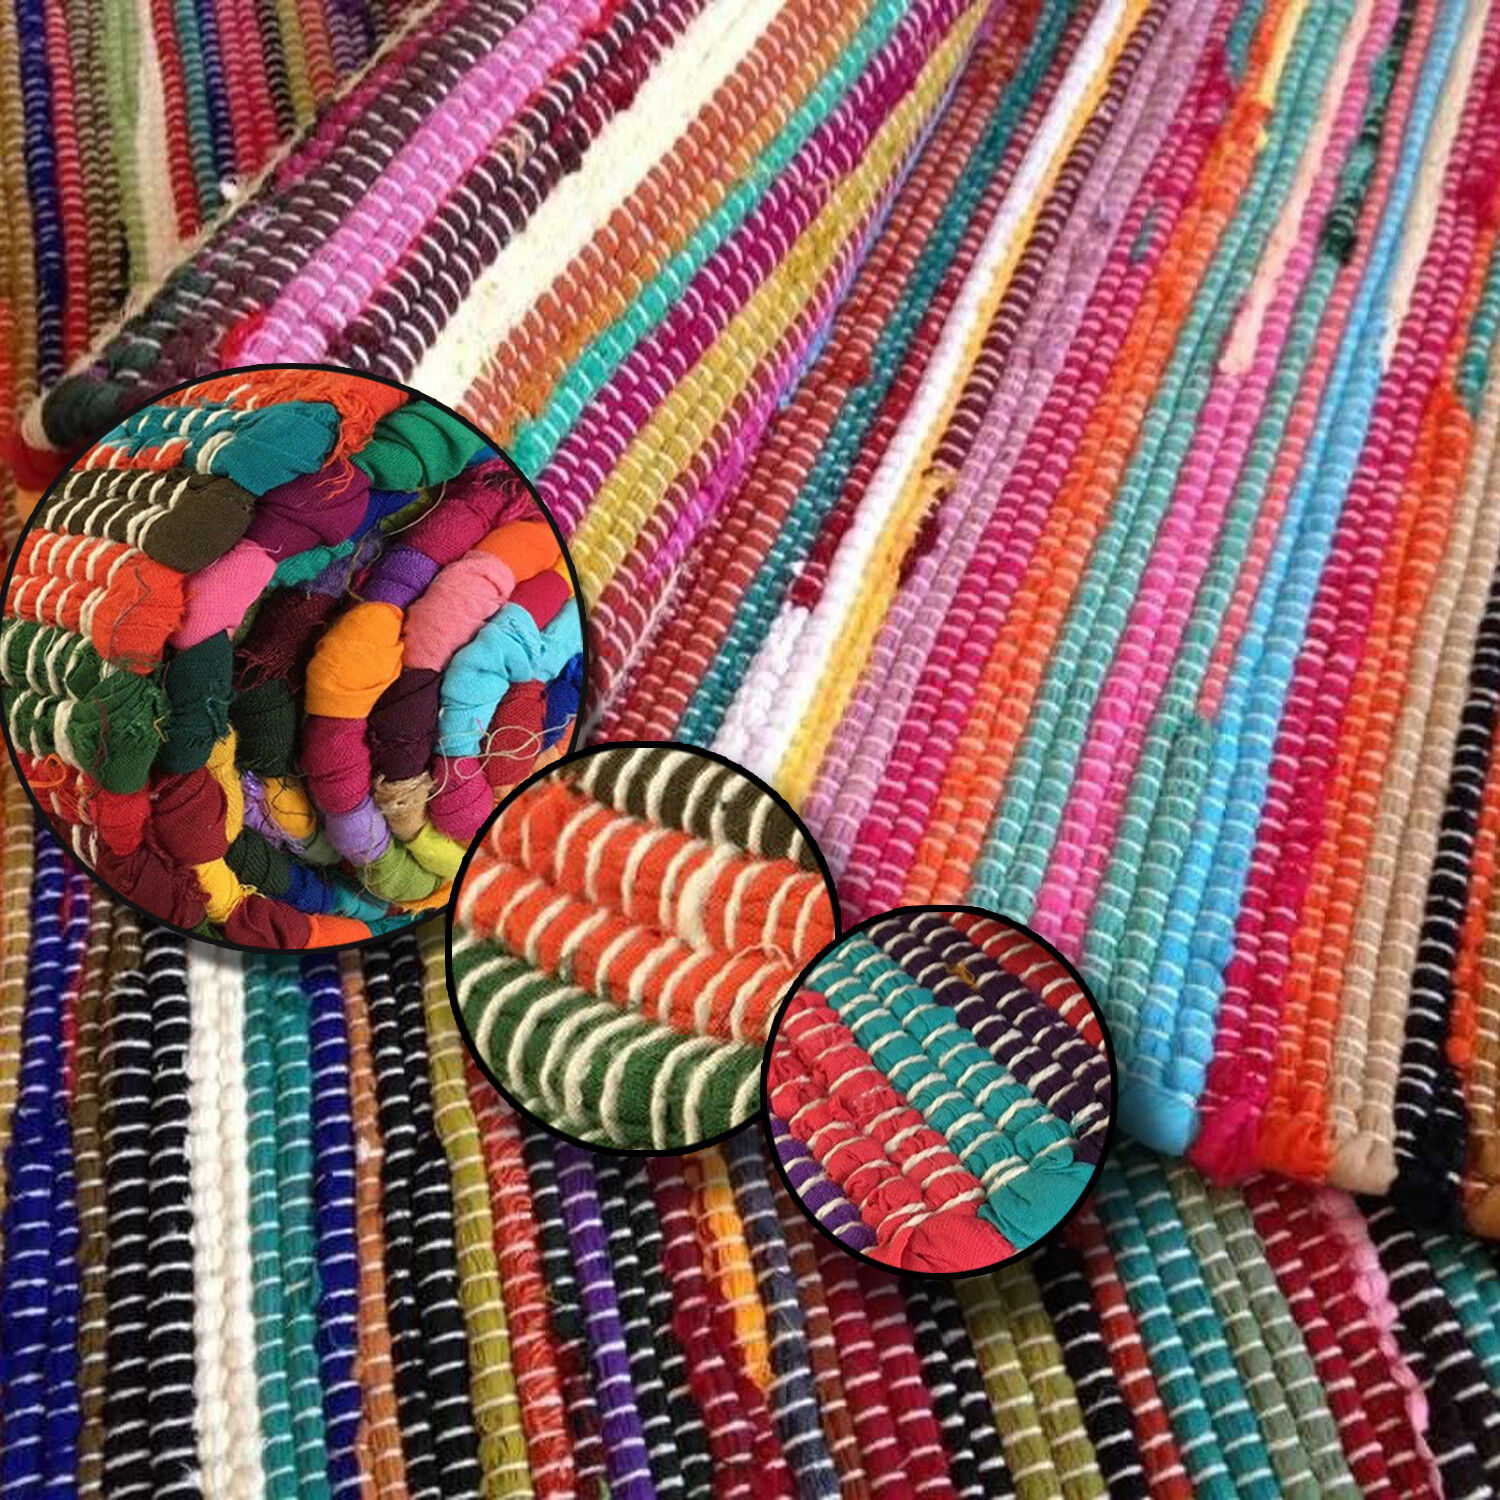 Details About Fair Trade Loom Recycled Rag Rug Chindi Shabby Chic Woven Striped Mat Handmade